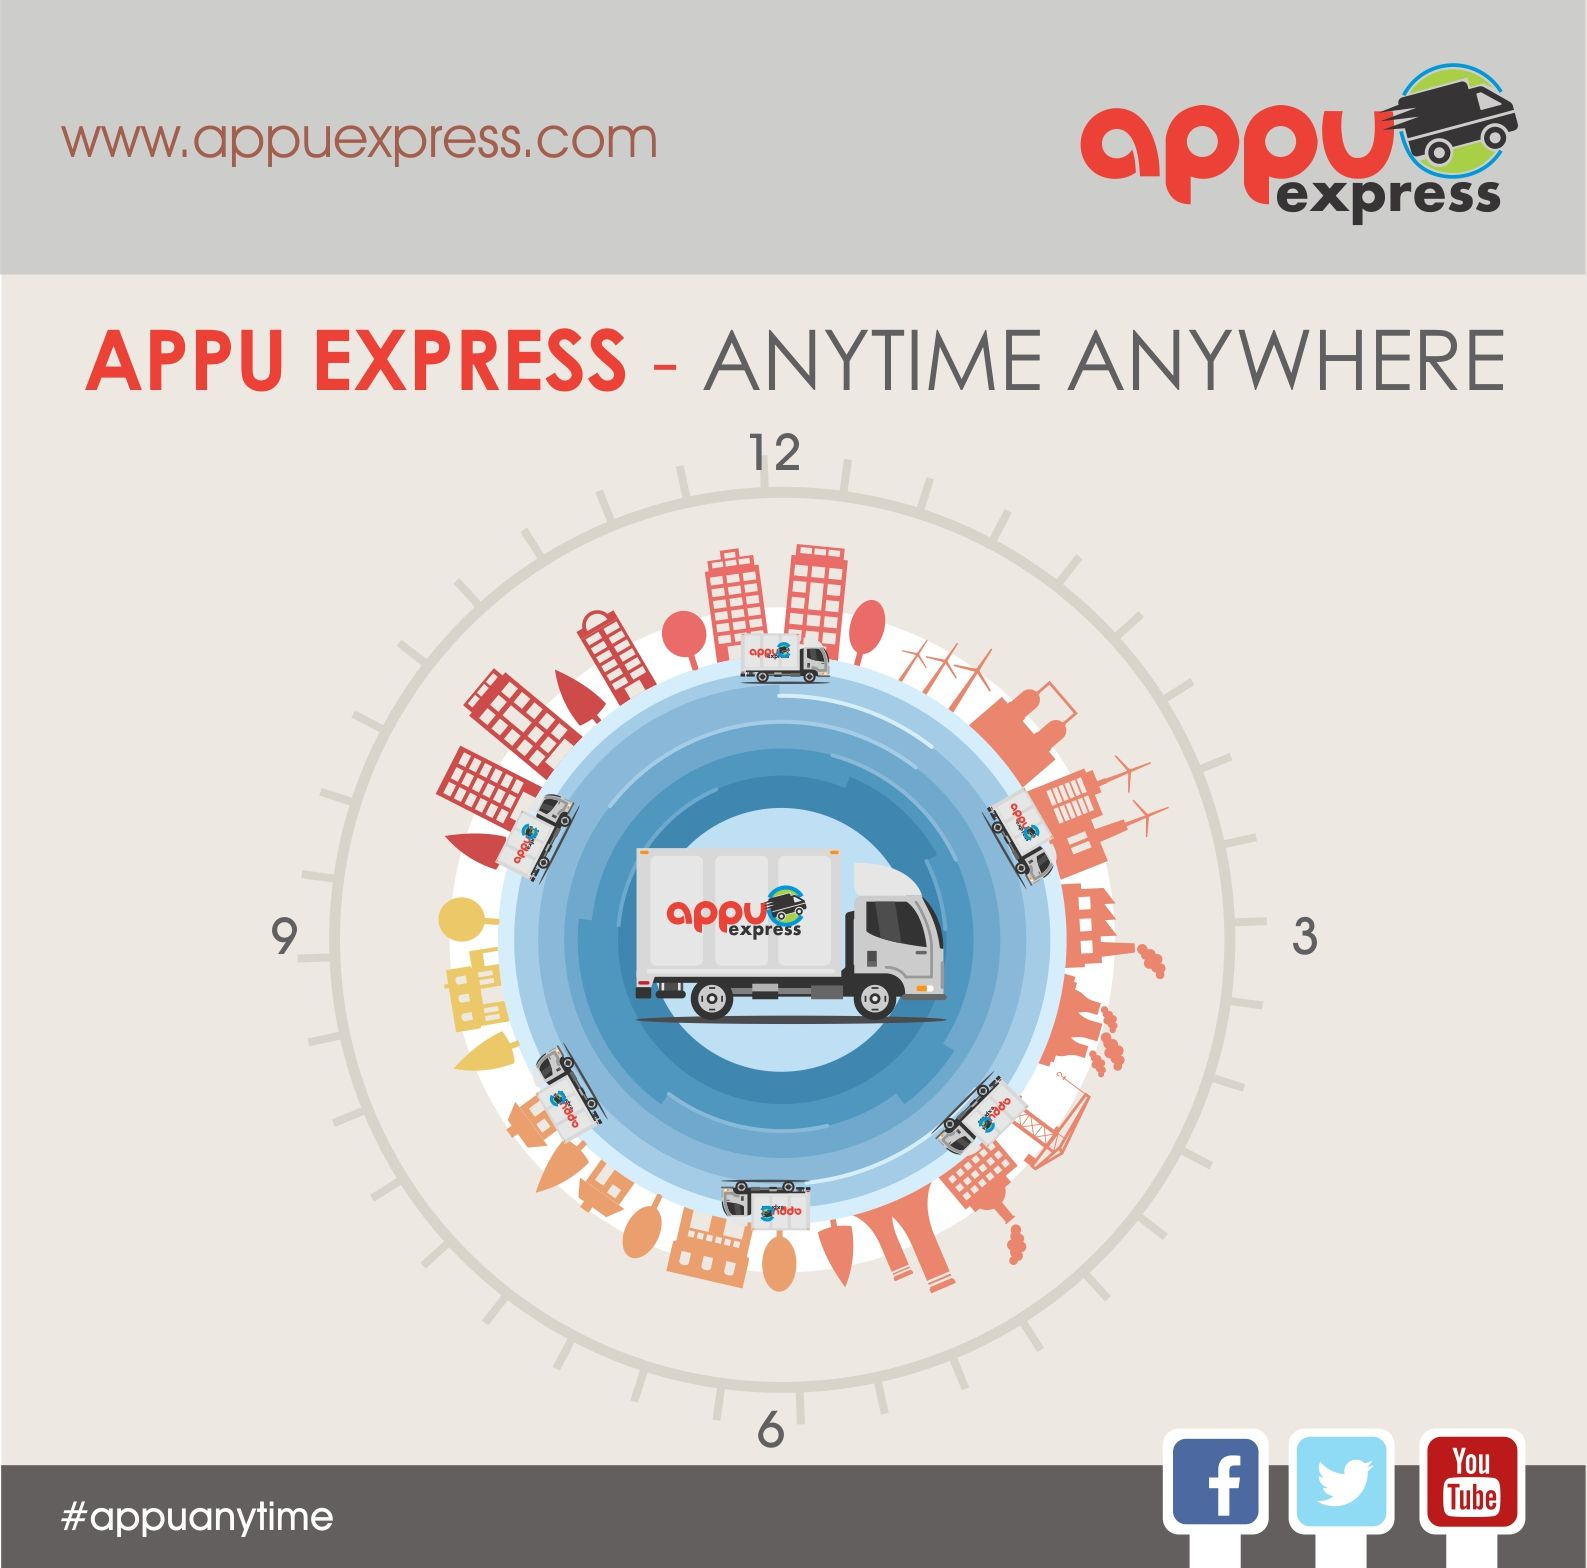 Go beyond Transportation services with AppuExpress and